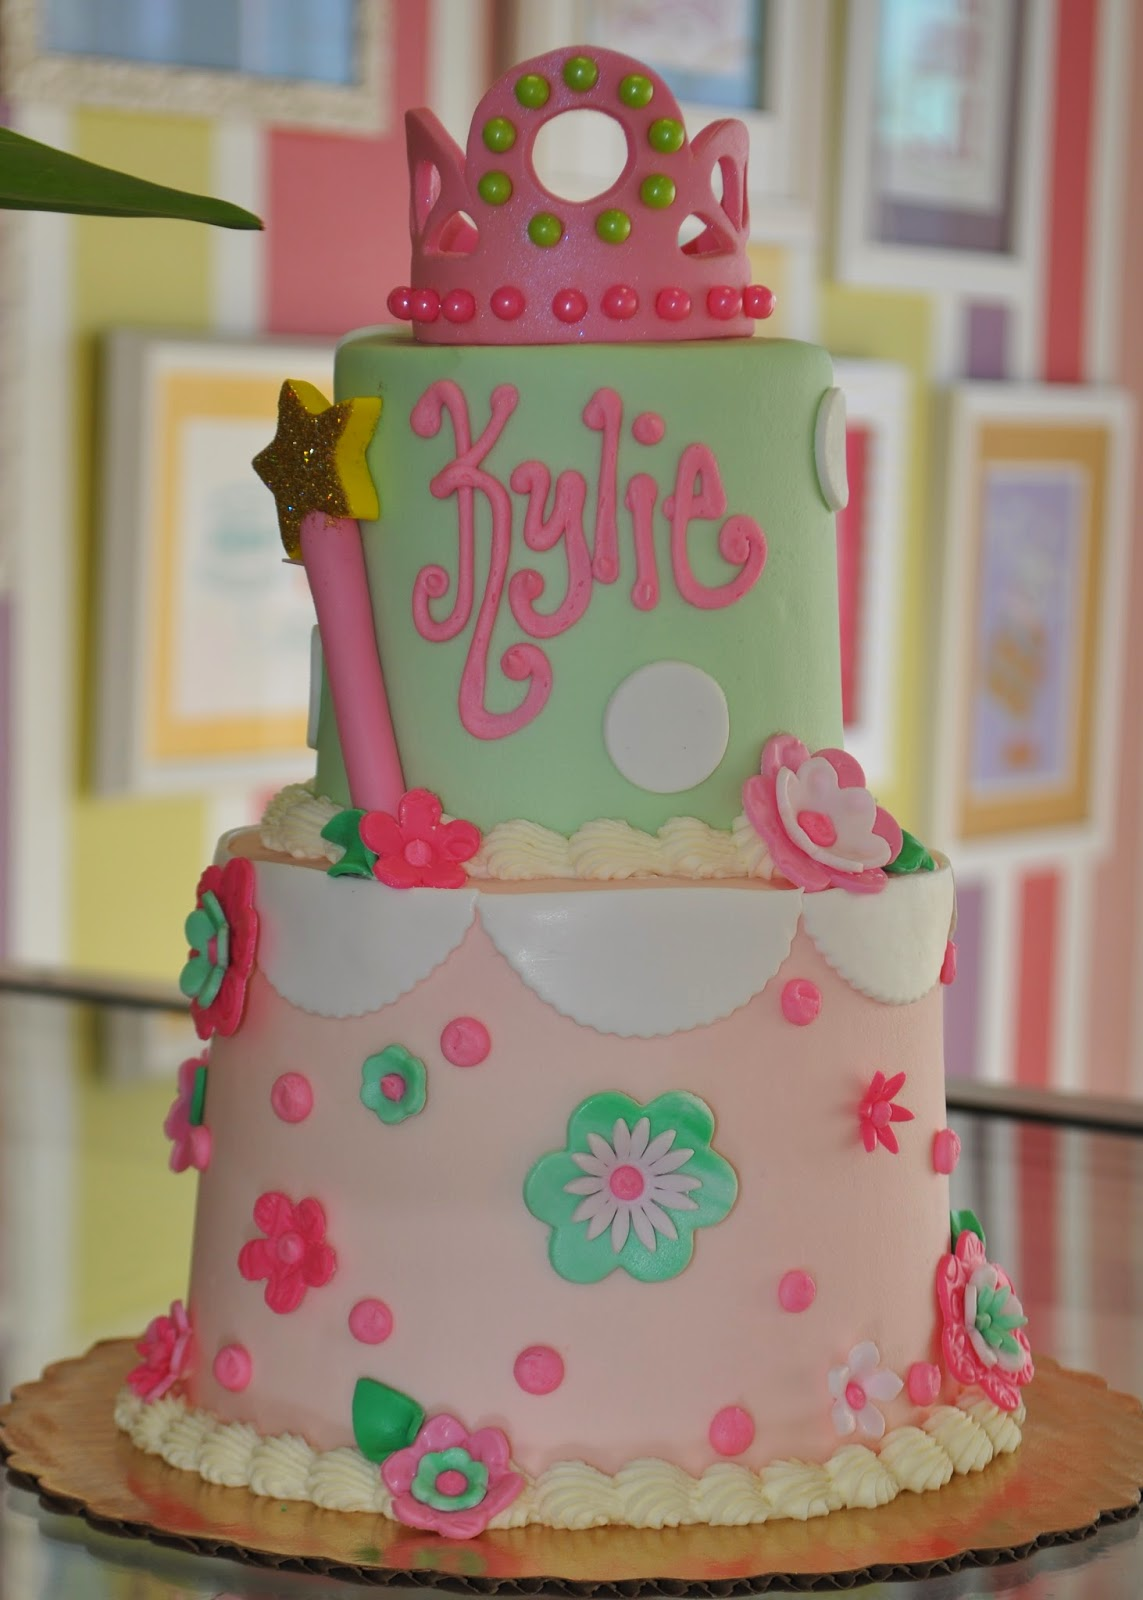 Owner And Cake Artist : Leah s Sweet Treats: Custom Cakes Leah s Sweet Treats Fort ...